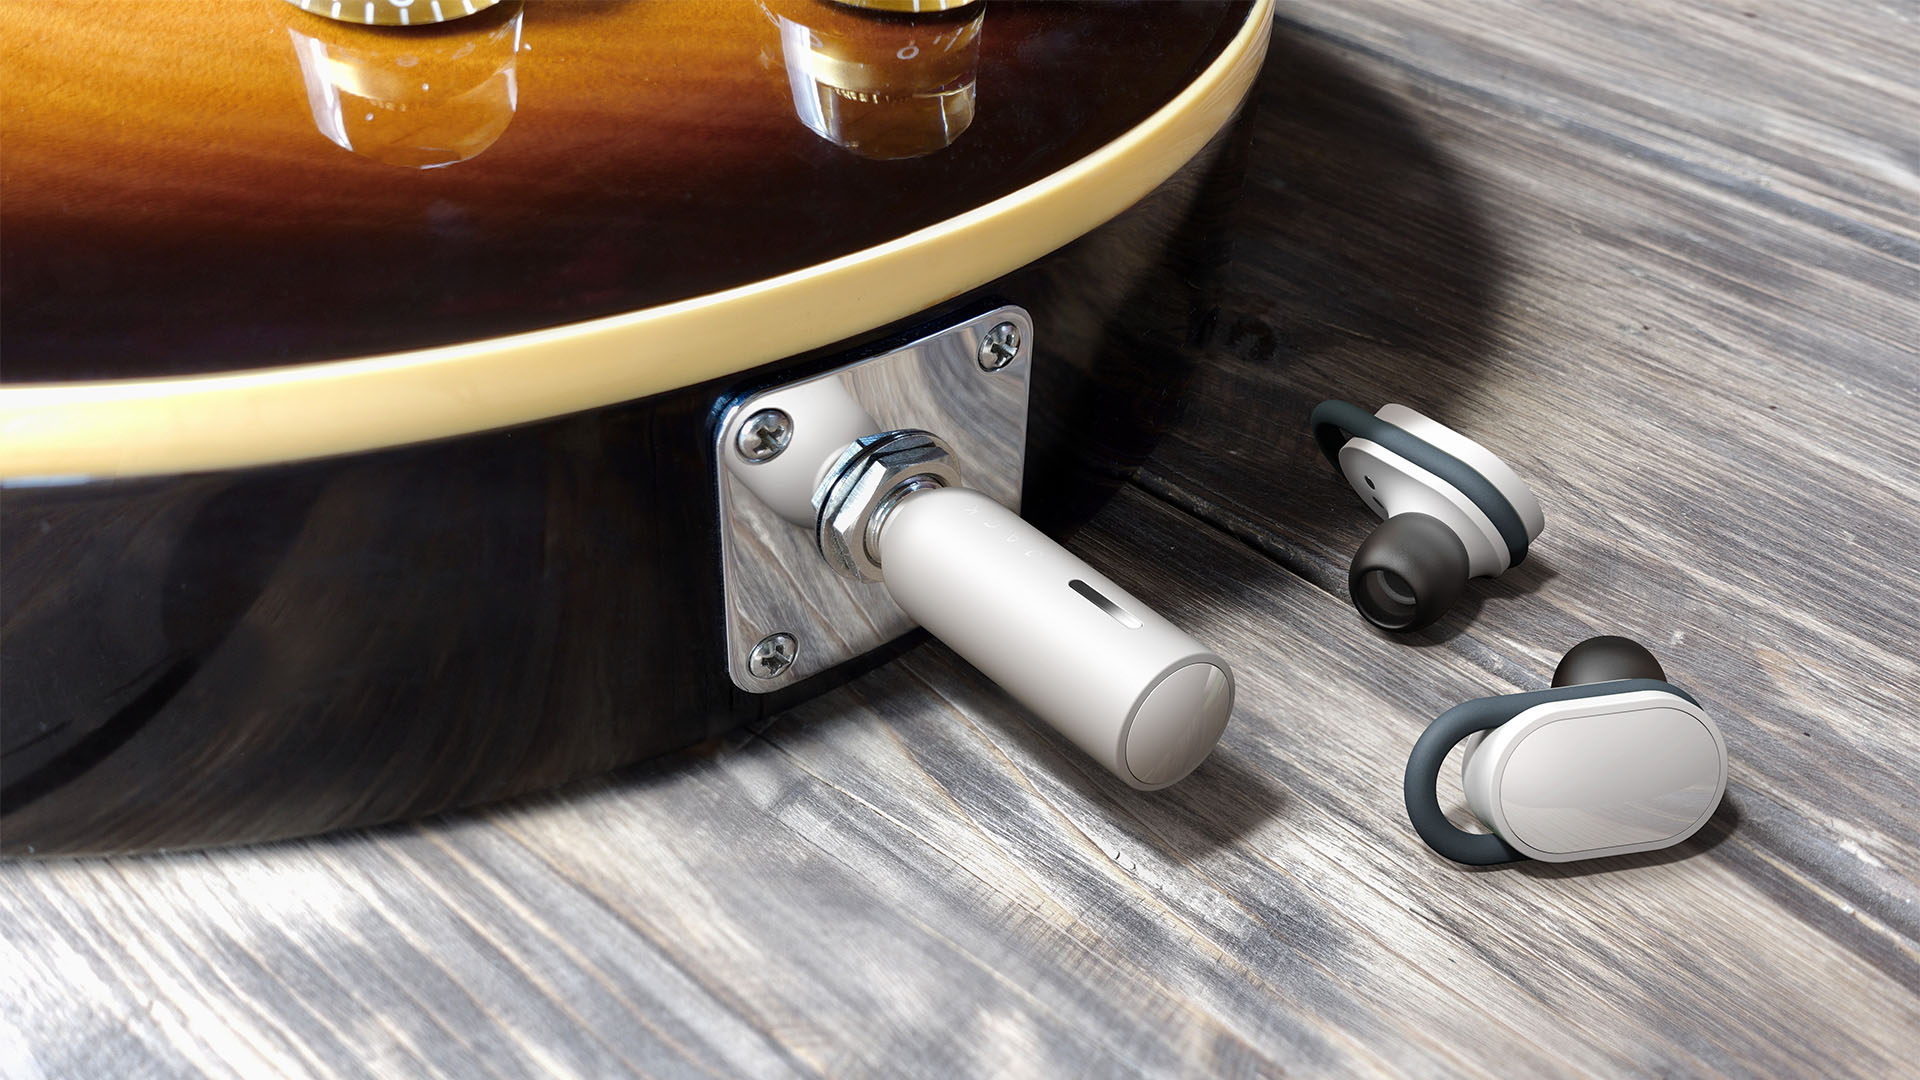 Close-up of a guitar with the jack plug transmitter plugged in and earbuds lying next to it